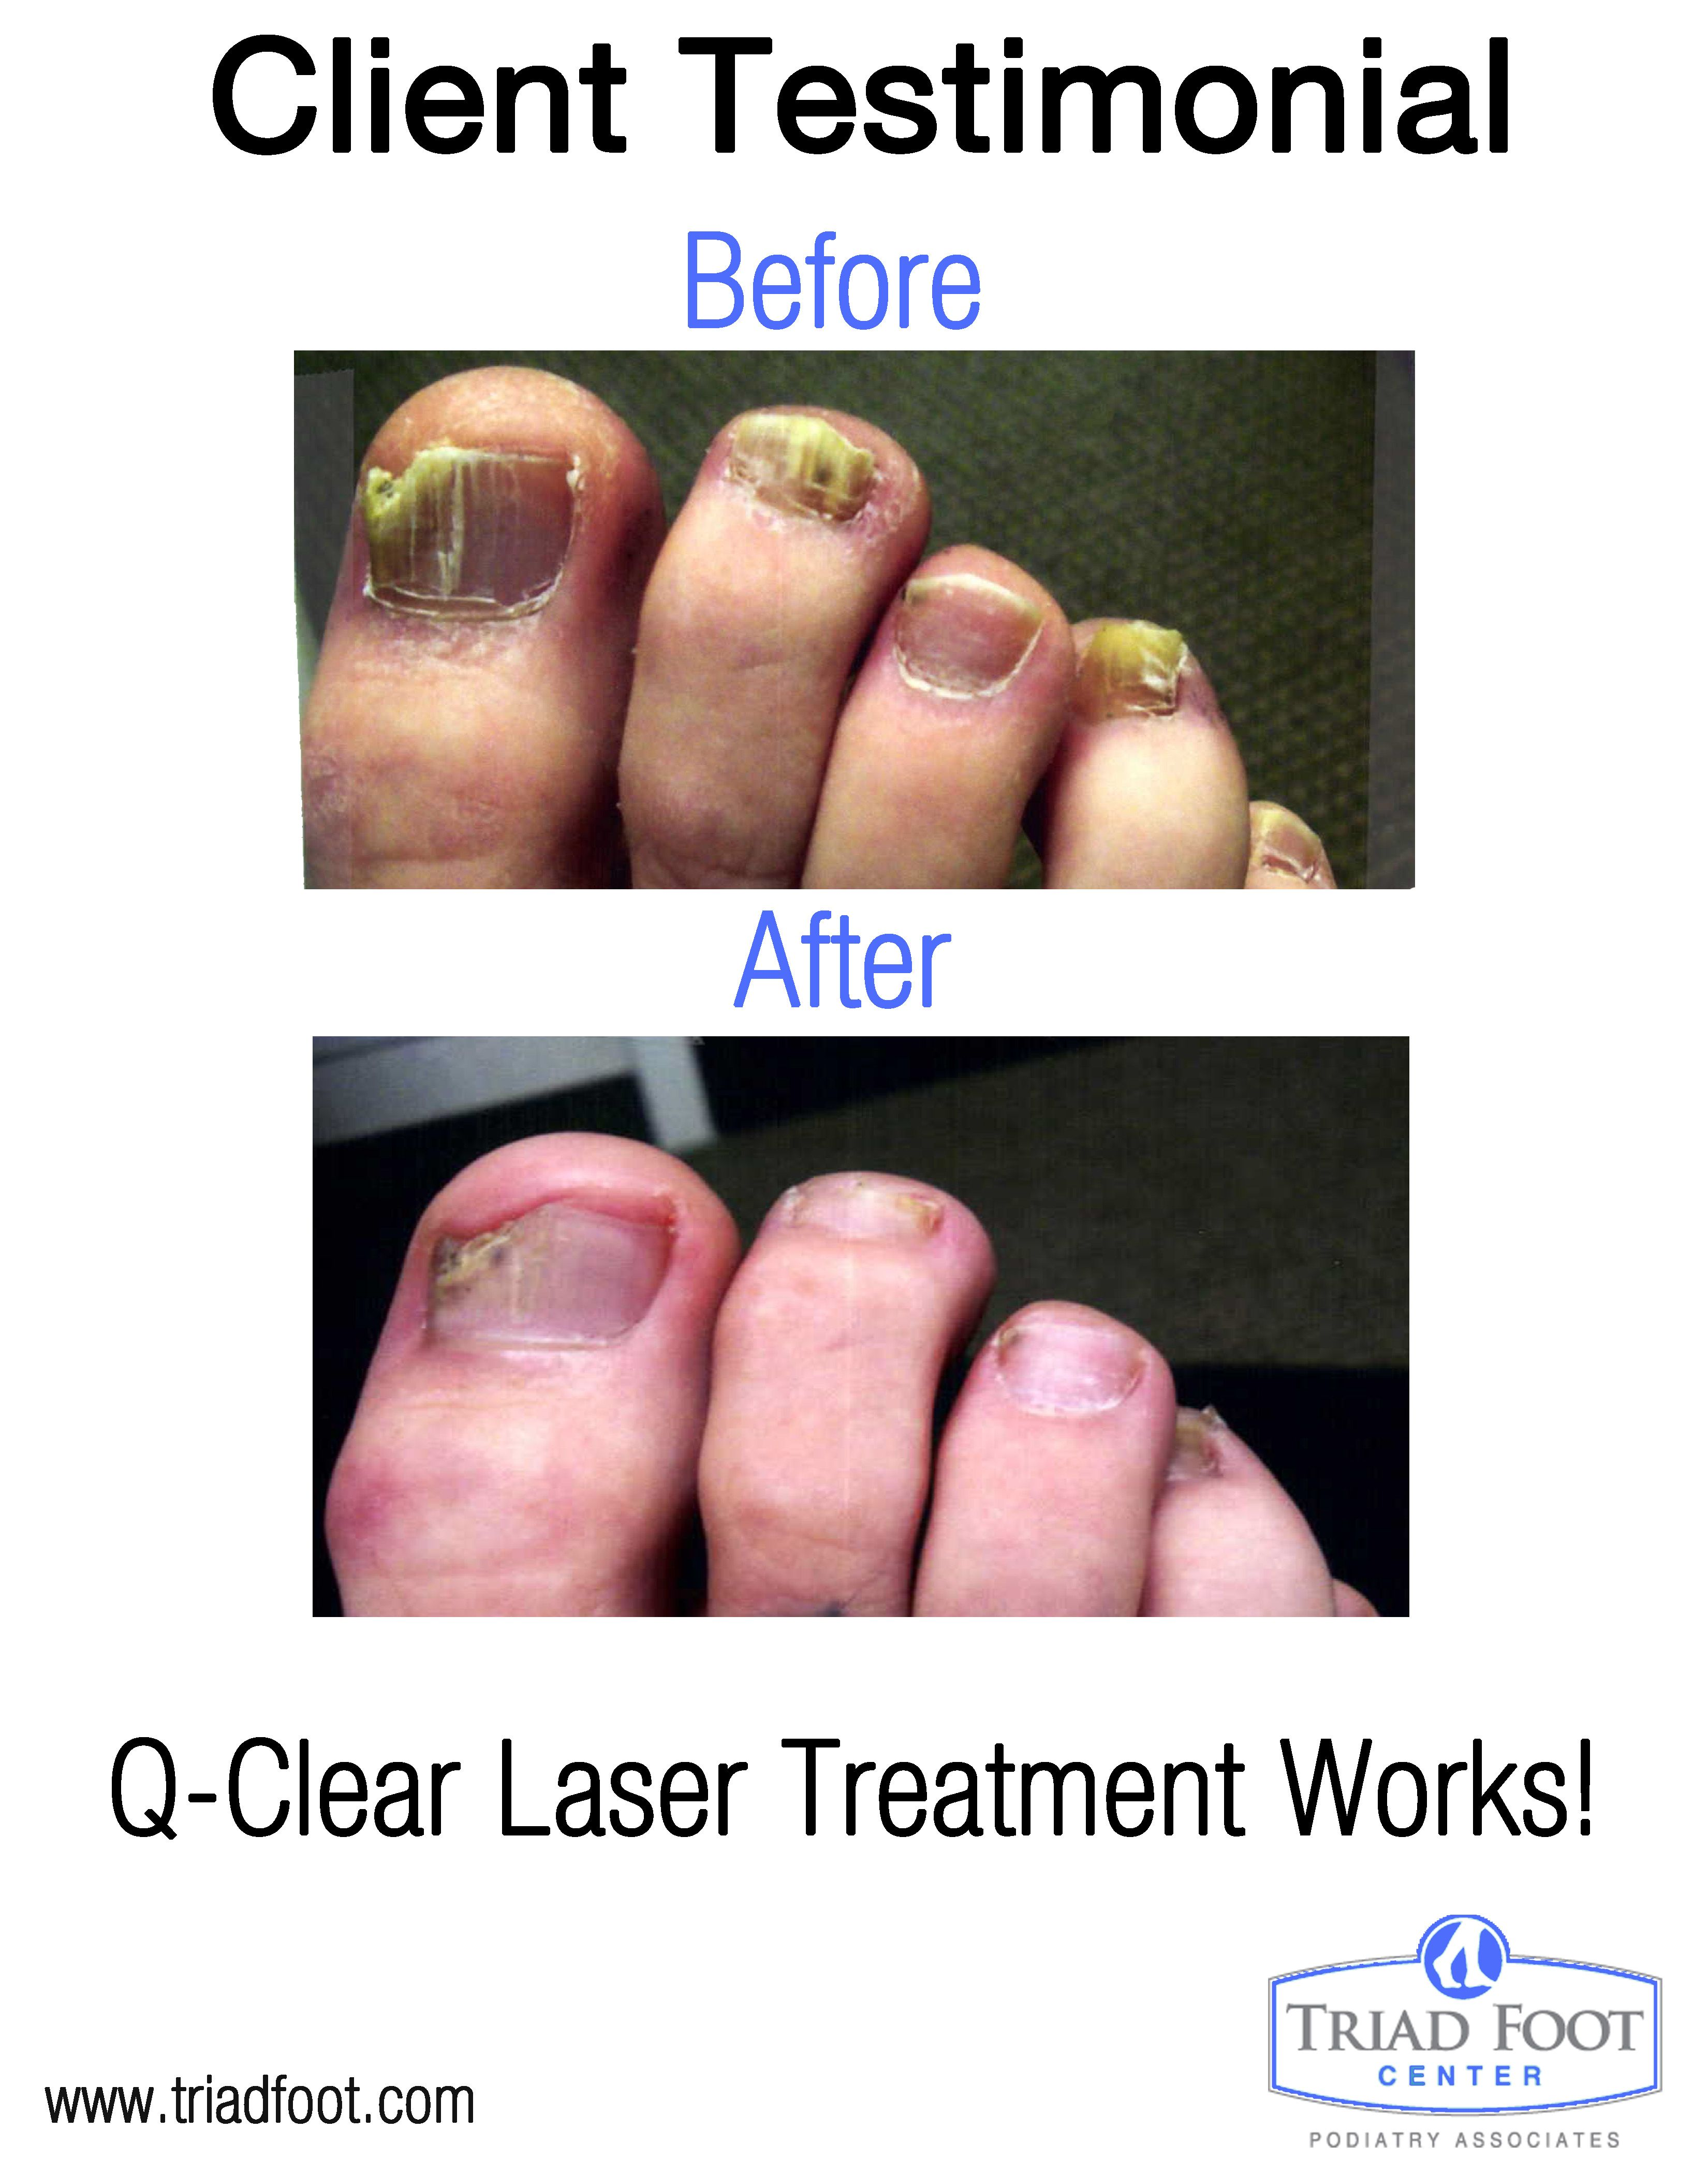 The results don't lie. Laser toenail treatment works!